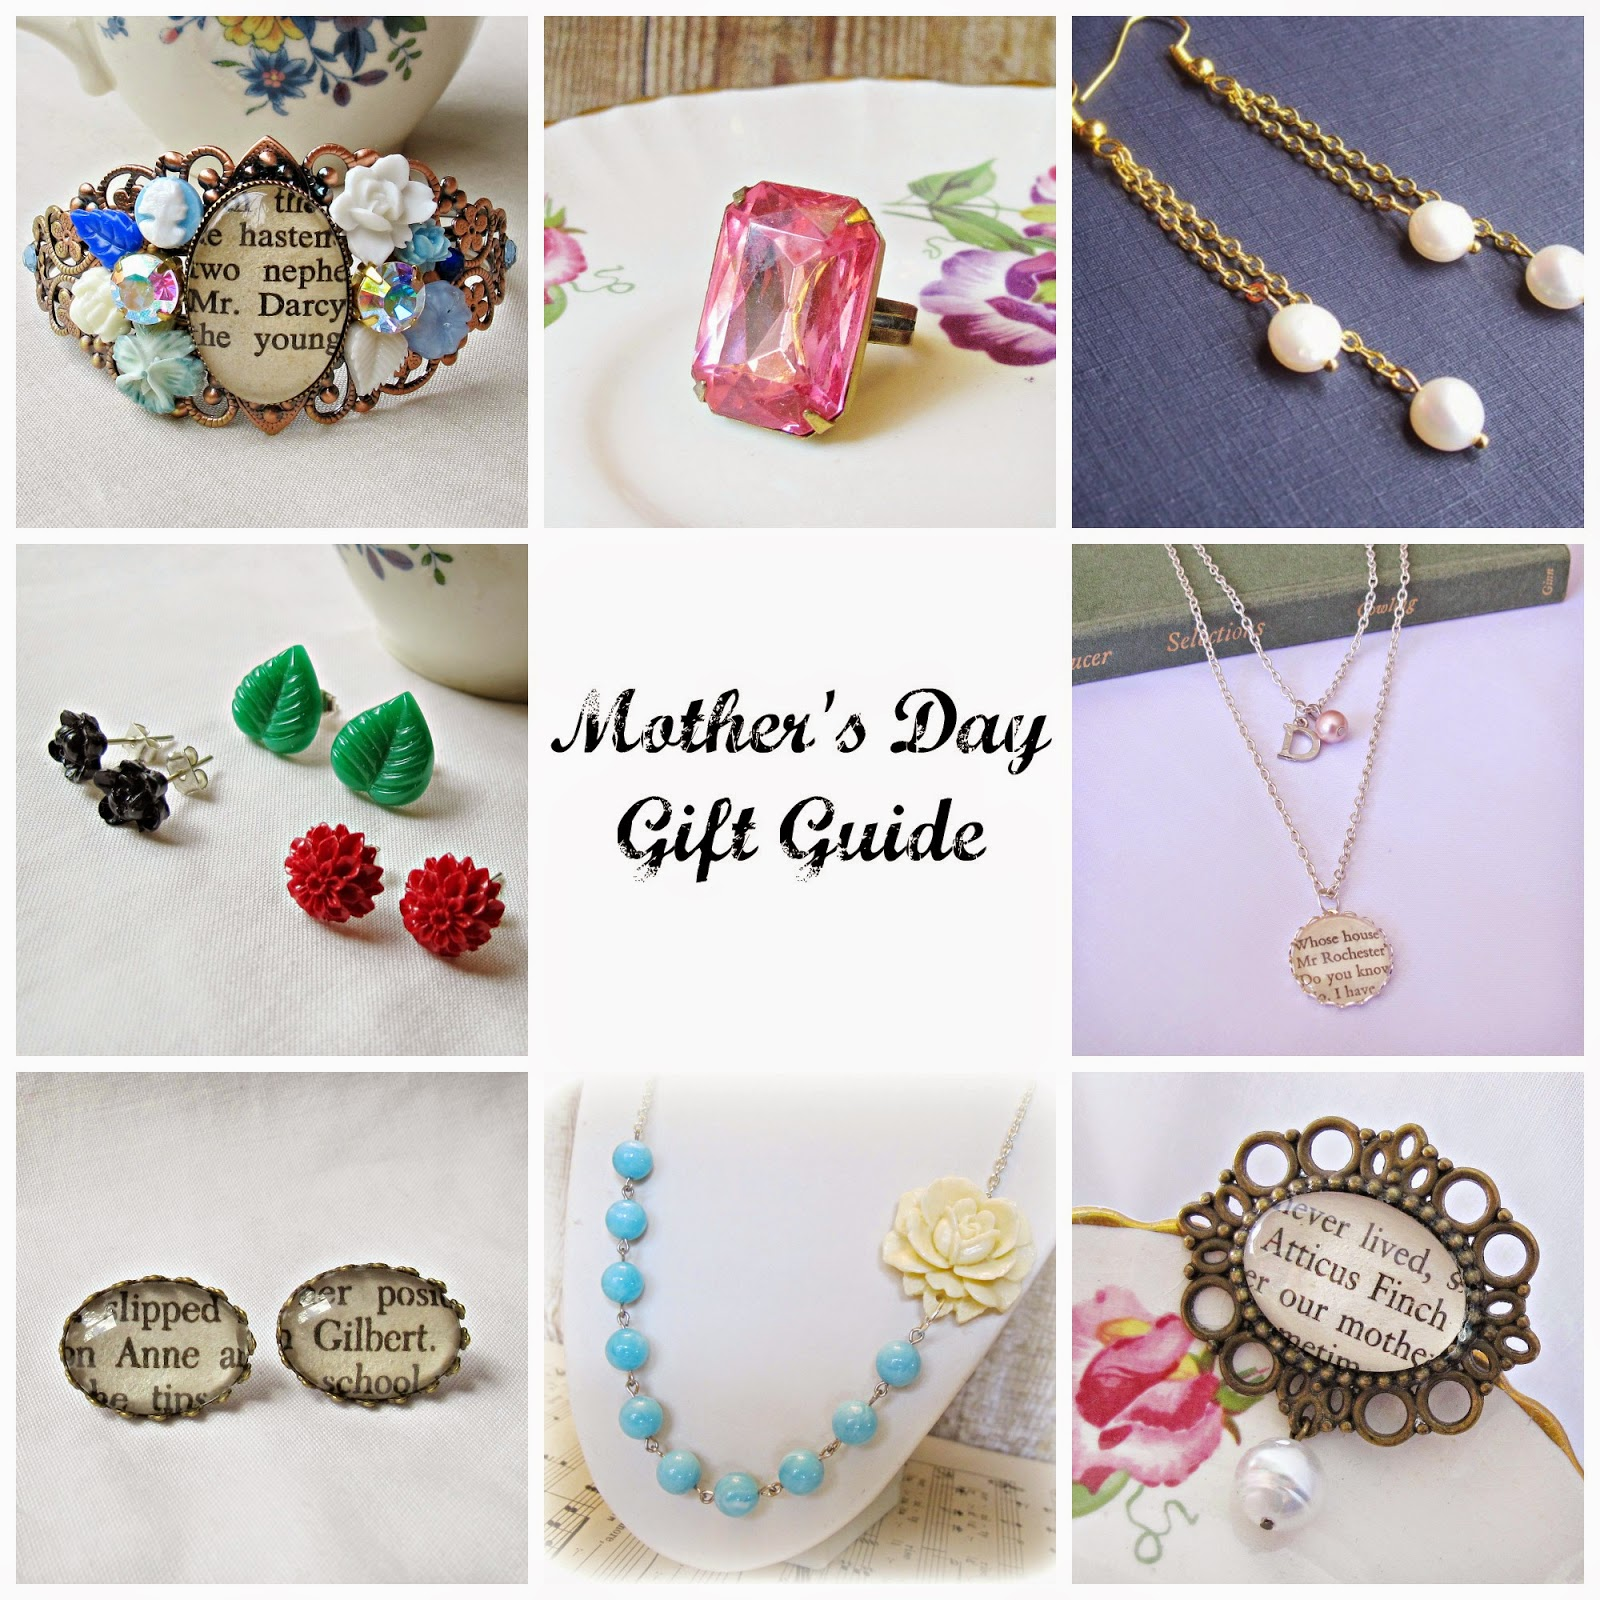 image two cheeky monkeys jewellery mother's day gift guide literature jewellery statement rings necklaces earrings bracelets